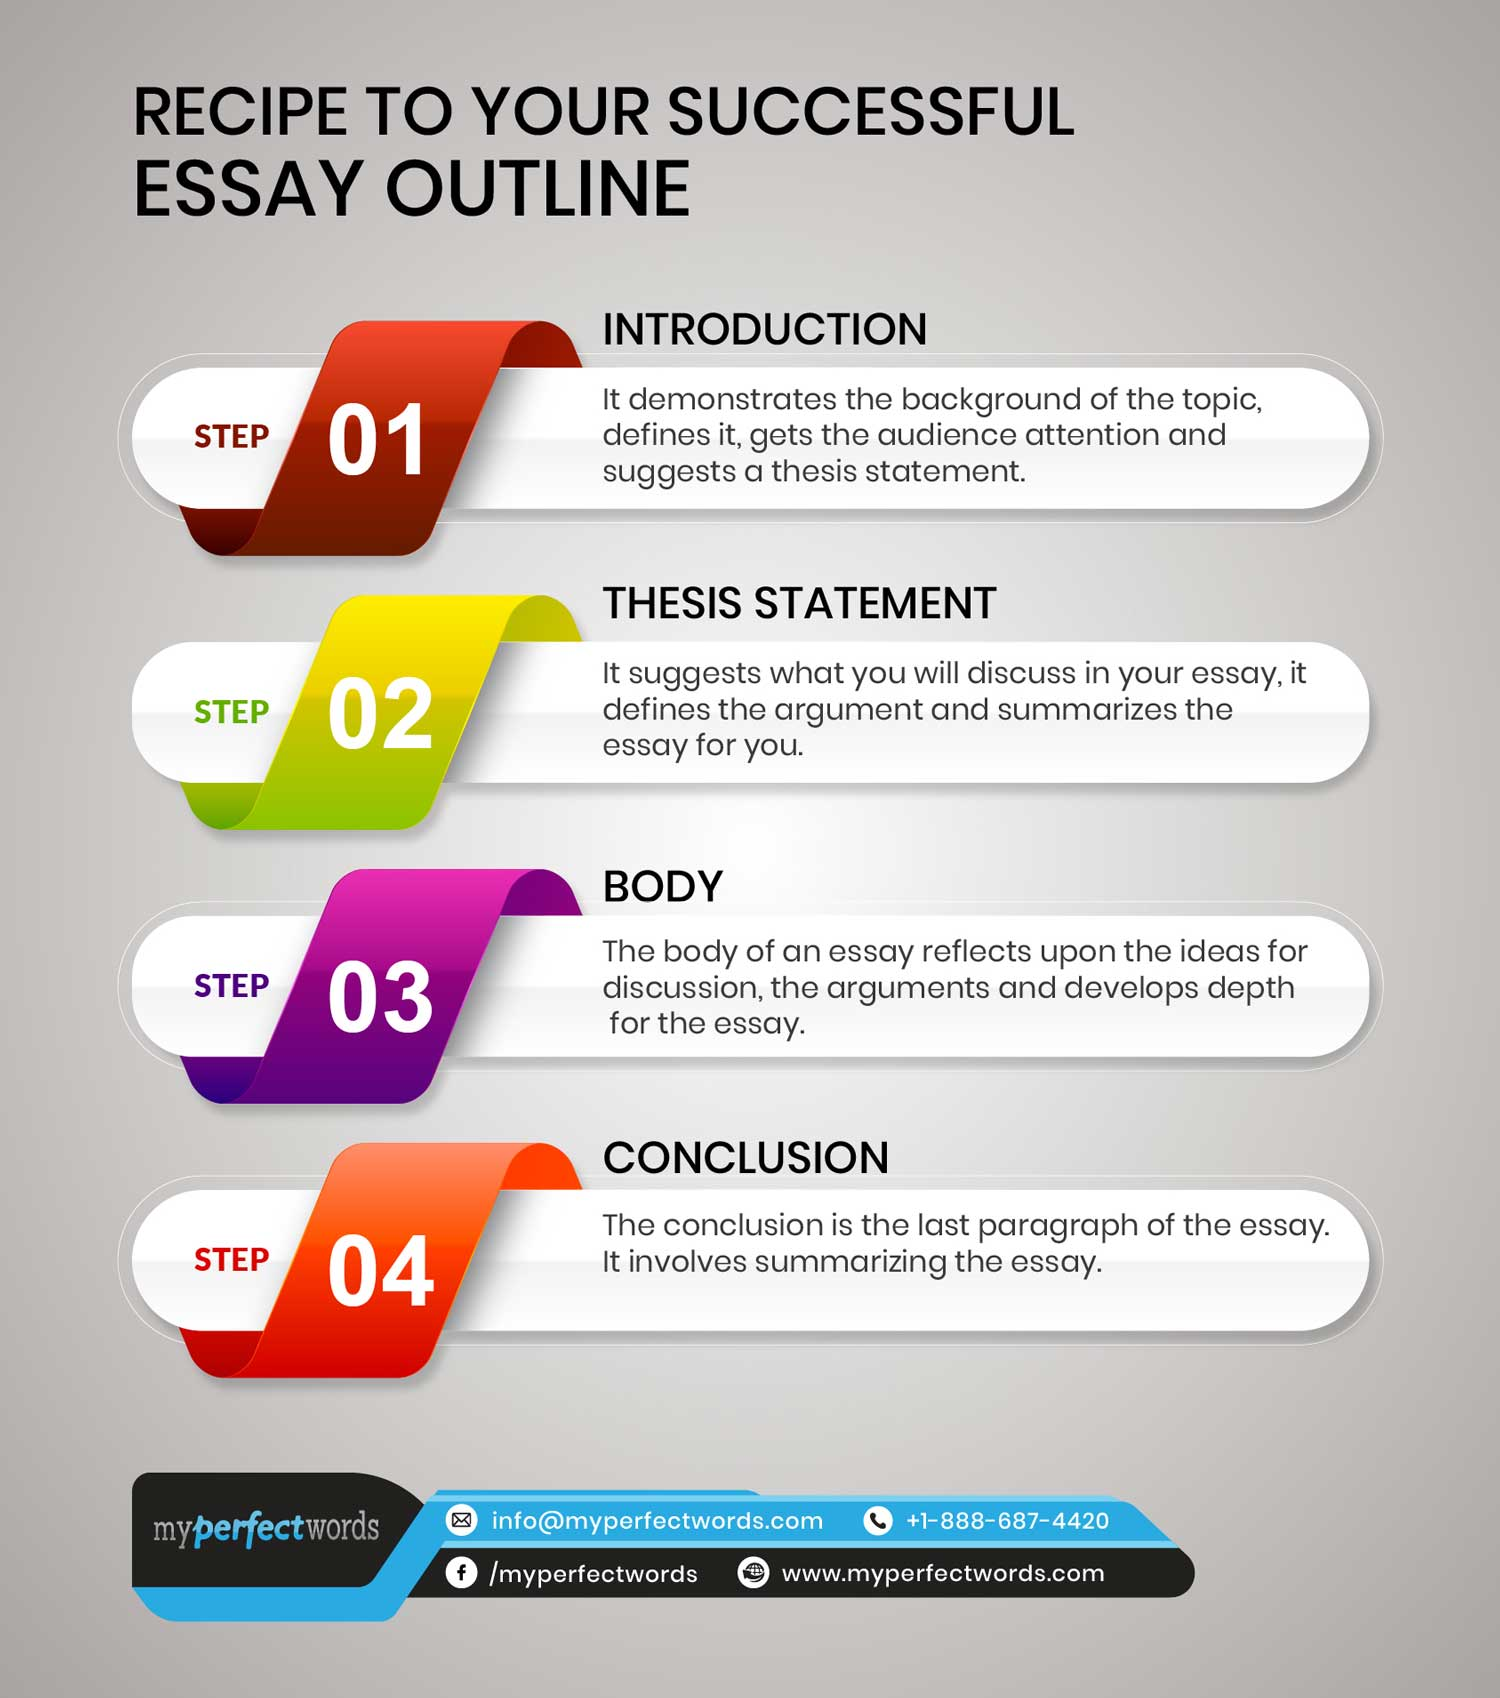 Compare And Contrast Essay On High School And College  High School Reflective Essay also Essay Writing Examples English How To Write An Essay Outline  Template And Structure High School Essay Writing